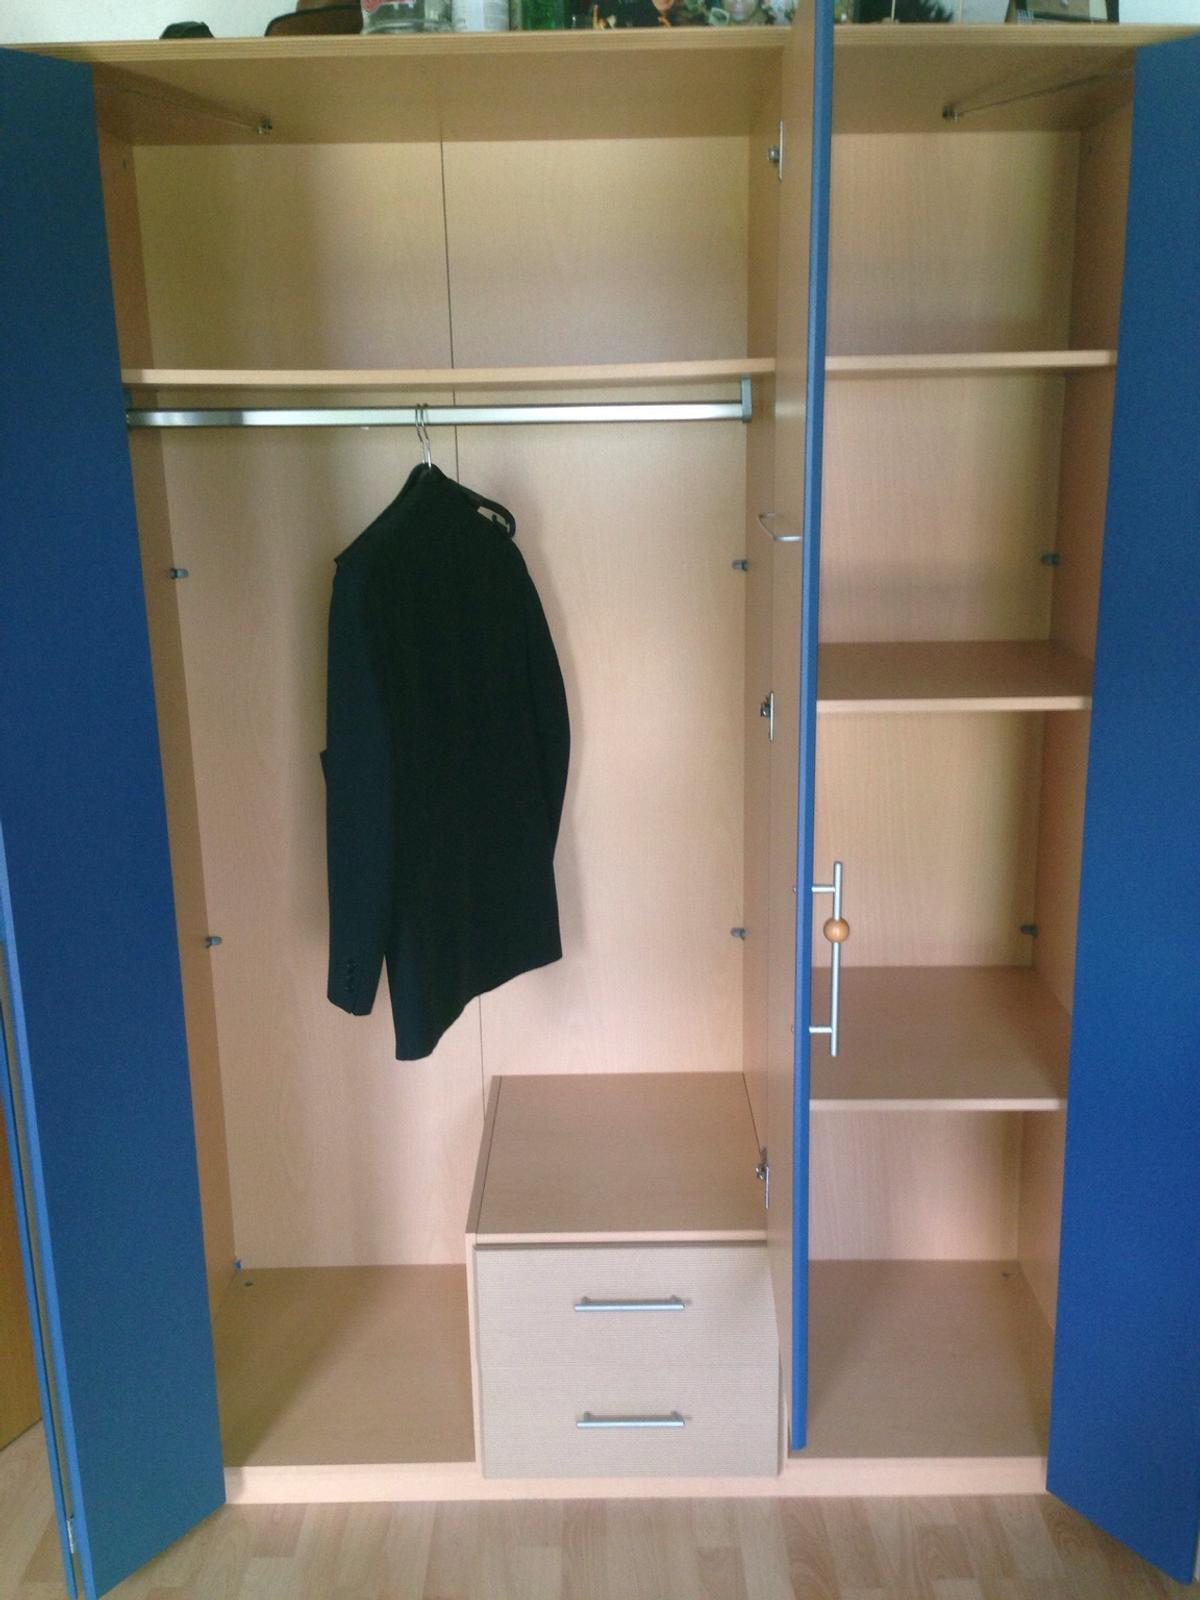 Kleiderschrank 150x200 Cm In 58239 Schwerte For 40 00 For Sale